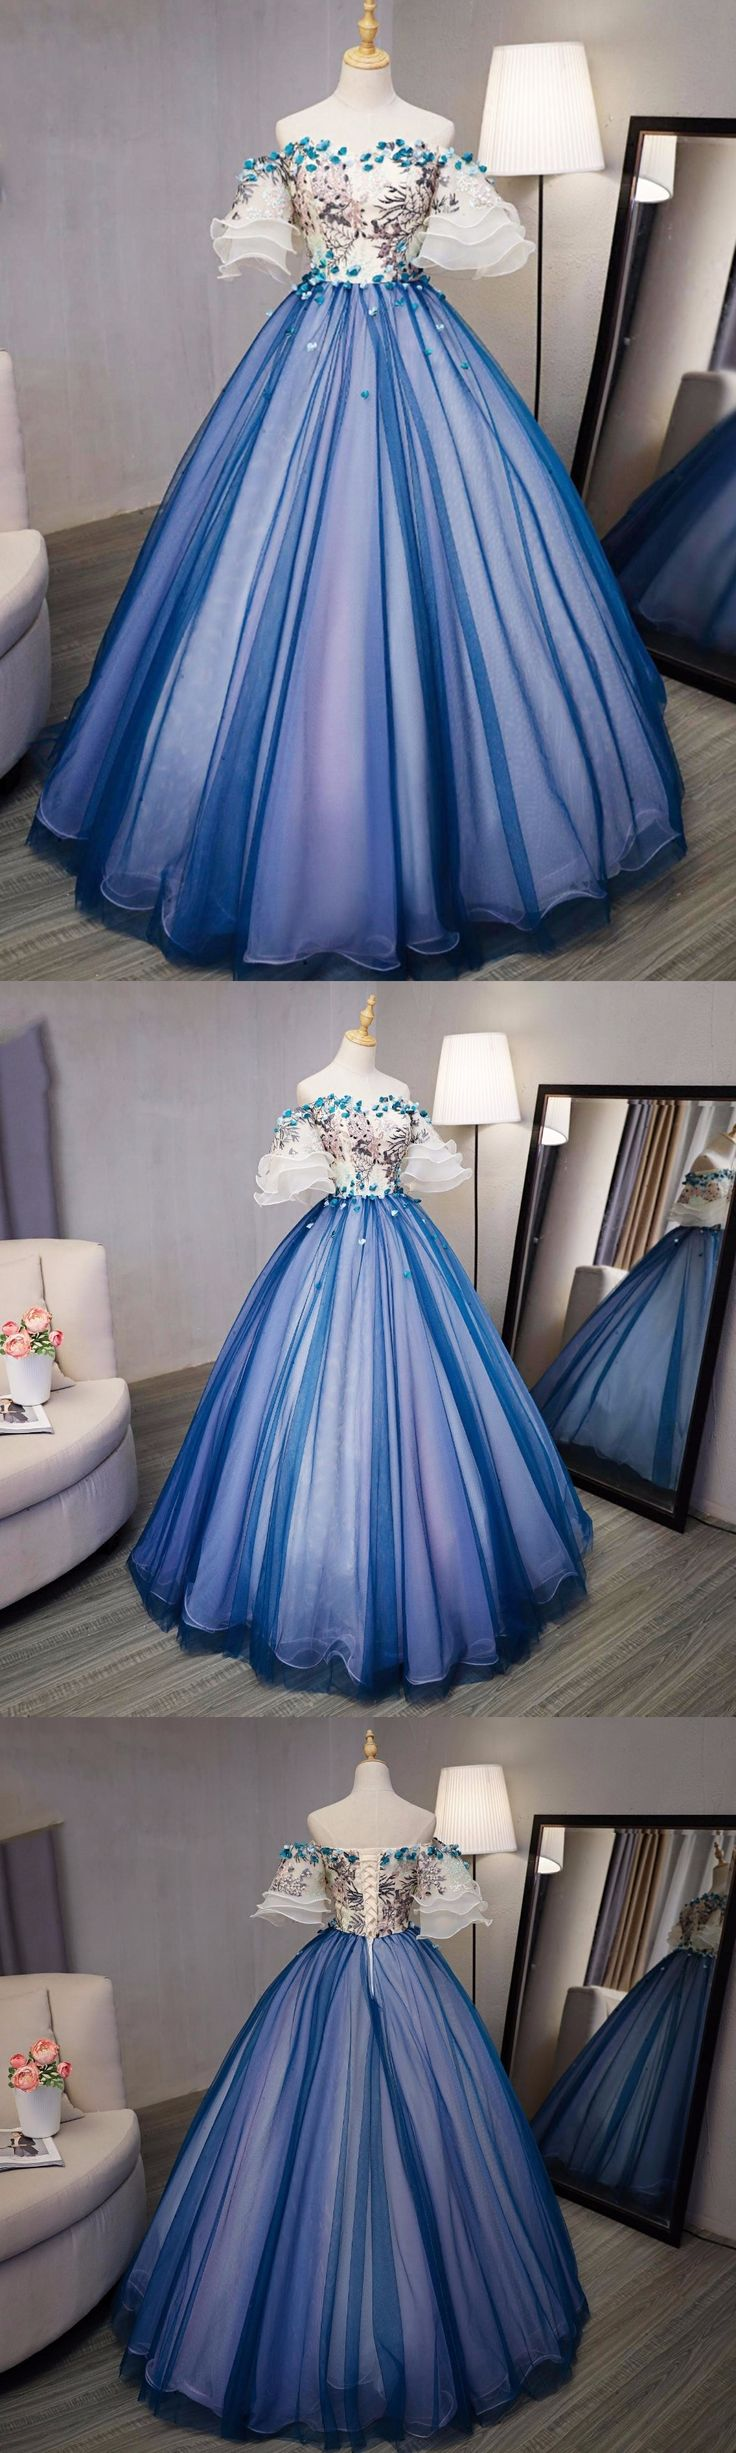 Ball Gown Prom Dresses Royal Blue and Ivory Hand-Made Flower Prom Dress/Evening Dress JKL348#annapromdress #prom #promdress #evening #eveningdress #dance #longdress #longpromdress #fashion #style #dress #ball gown